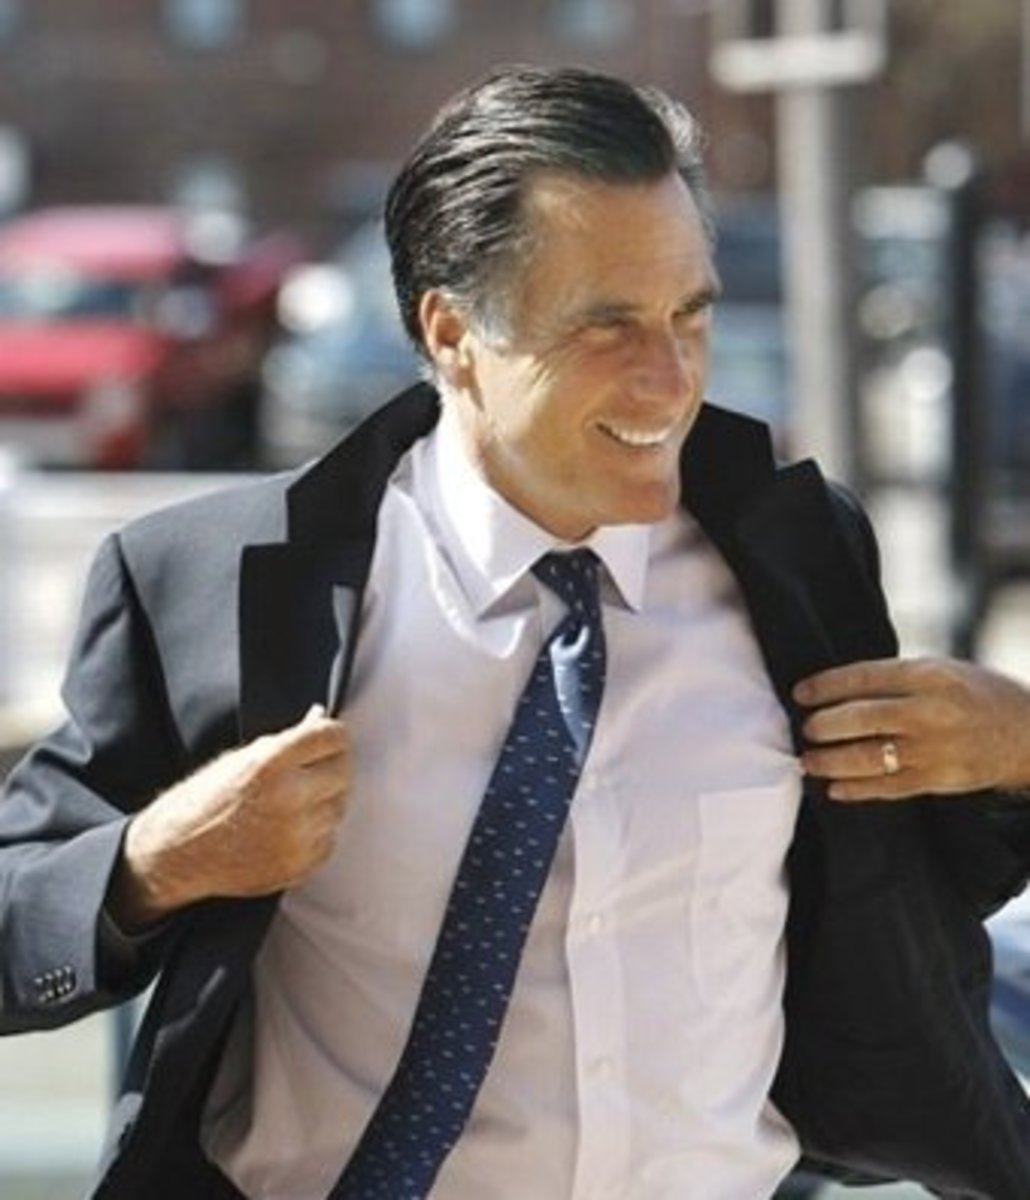 Mitt Romney: Every girl's dream man